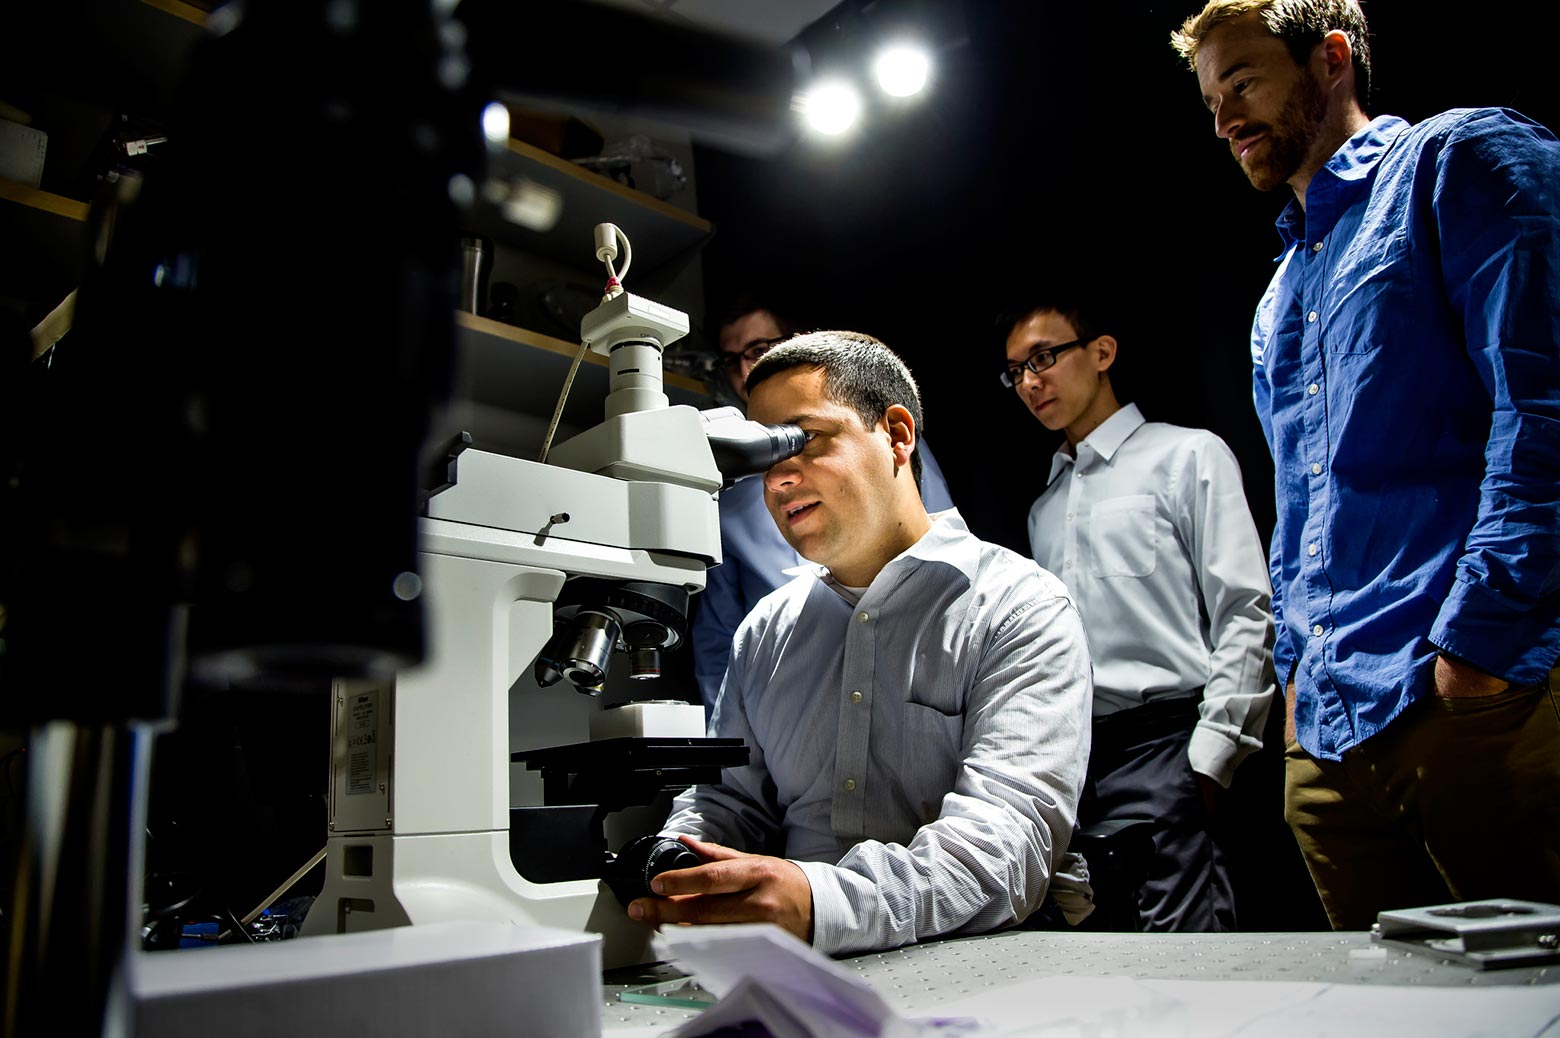 Researcher looks through microscope